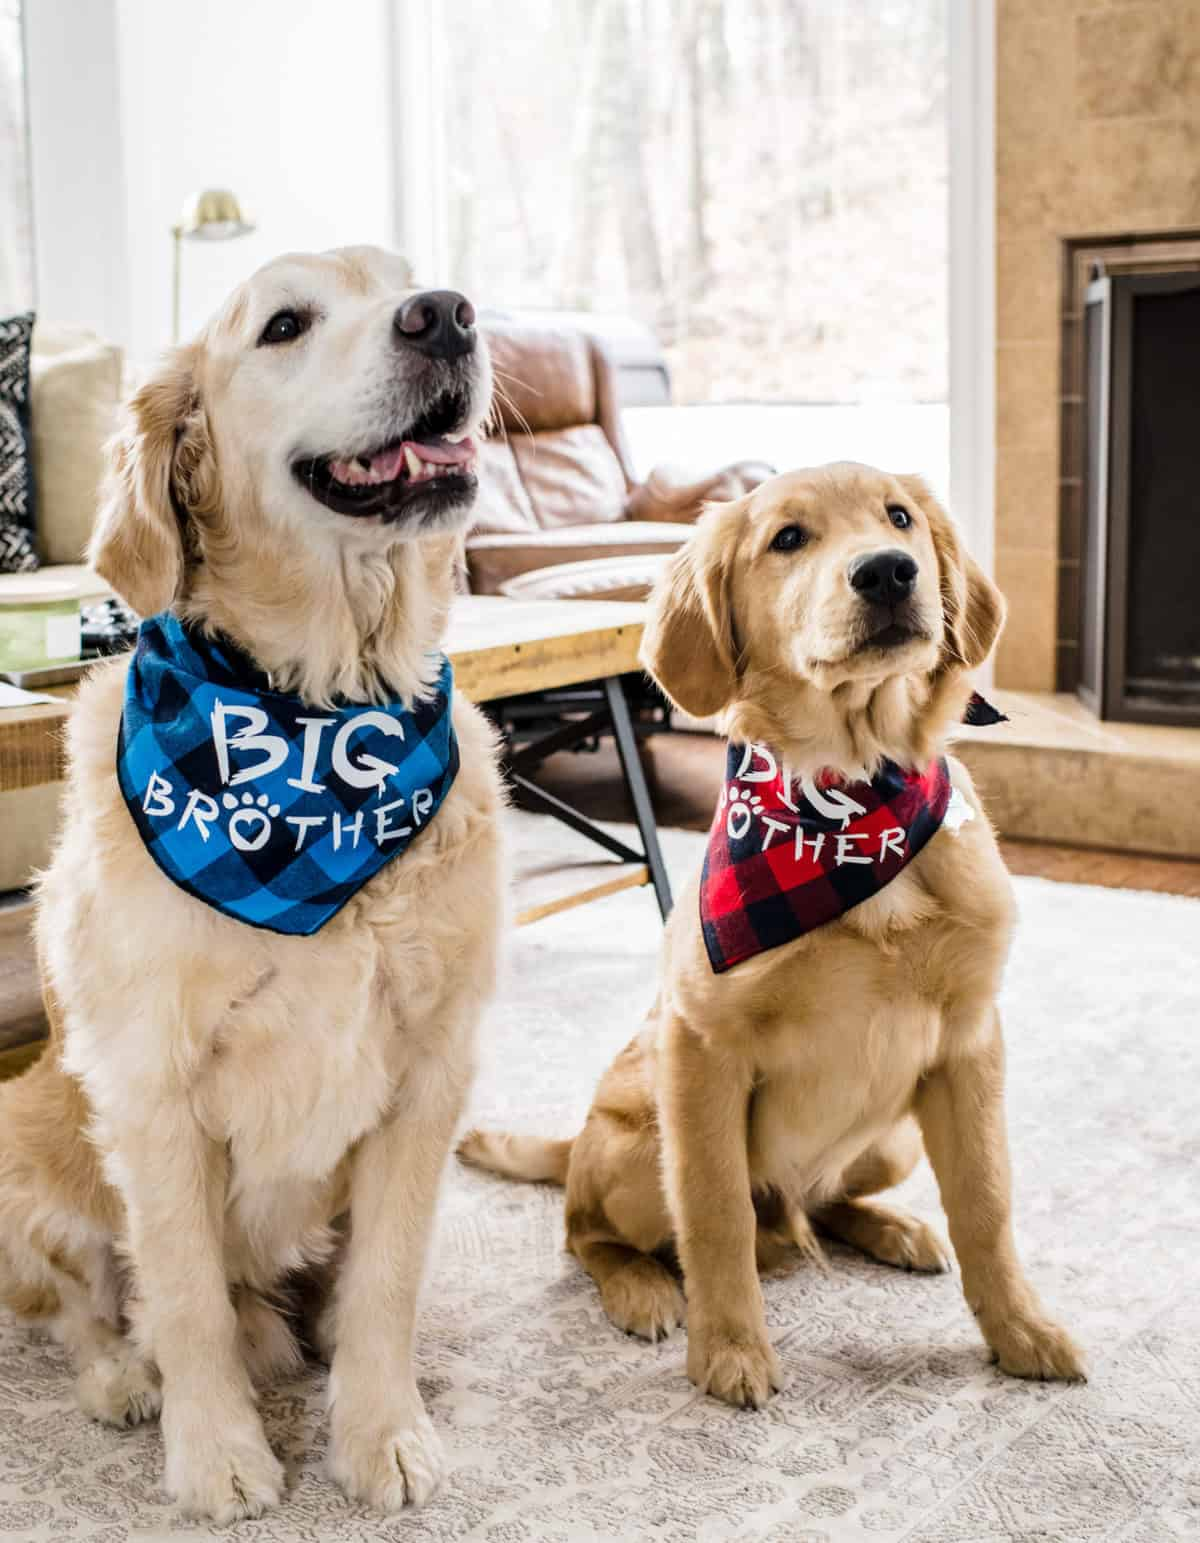 Two dogs who have pet insurance sitting together with bandanas on.